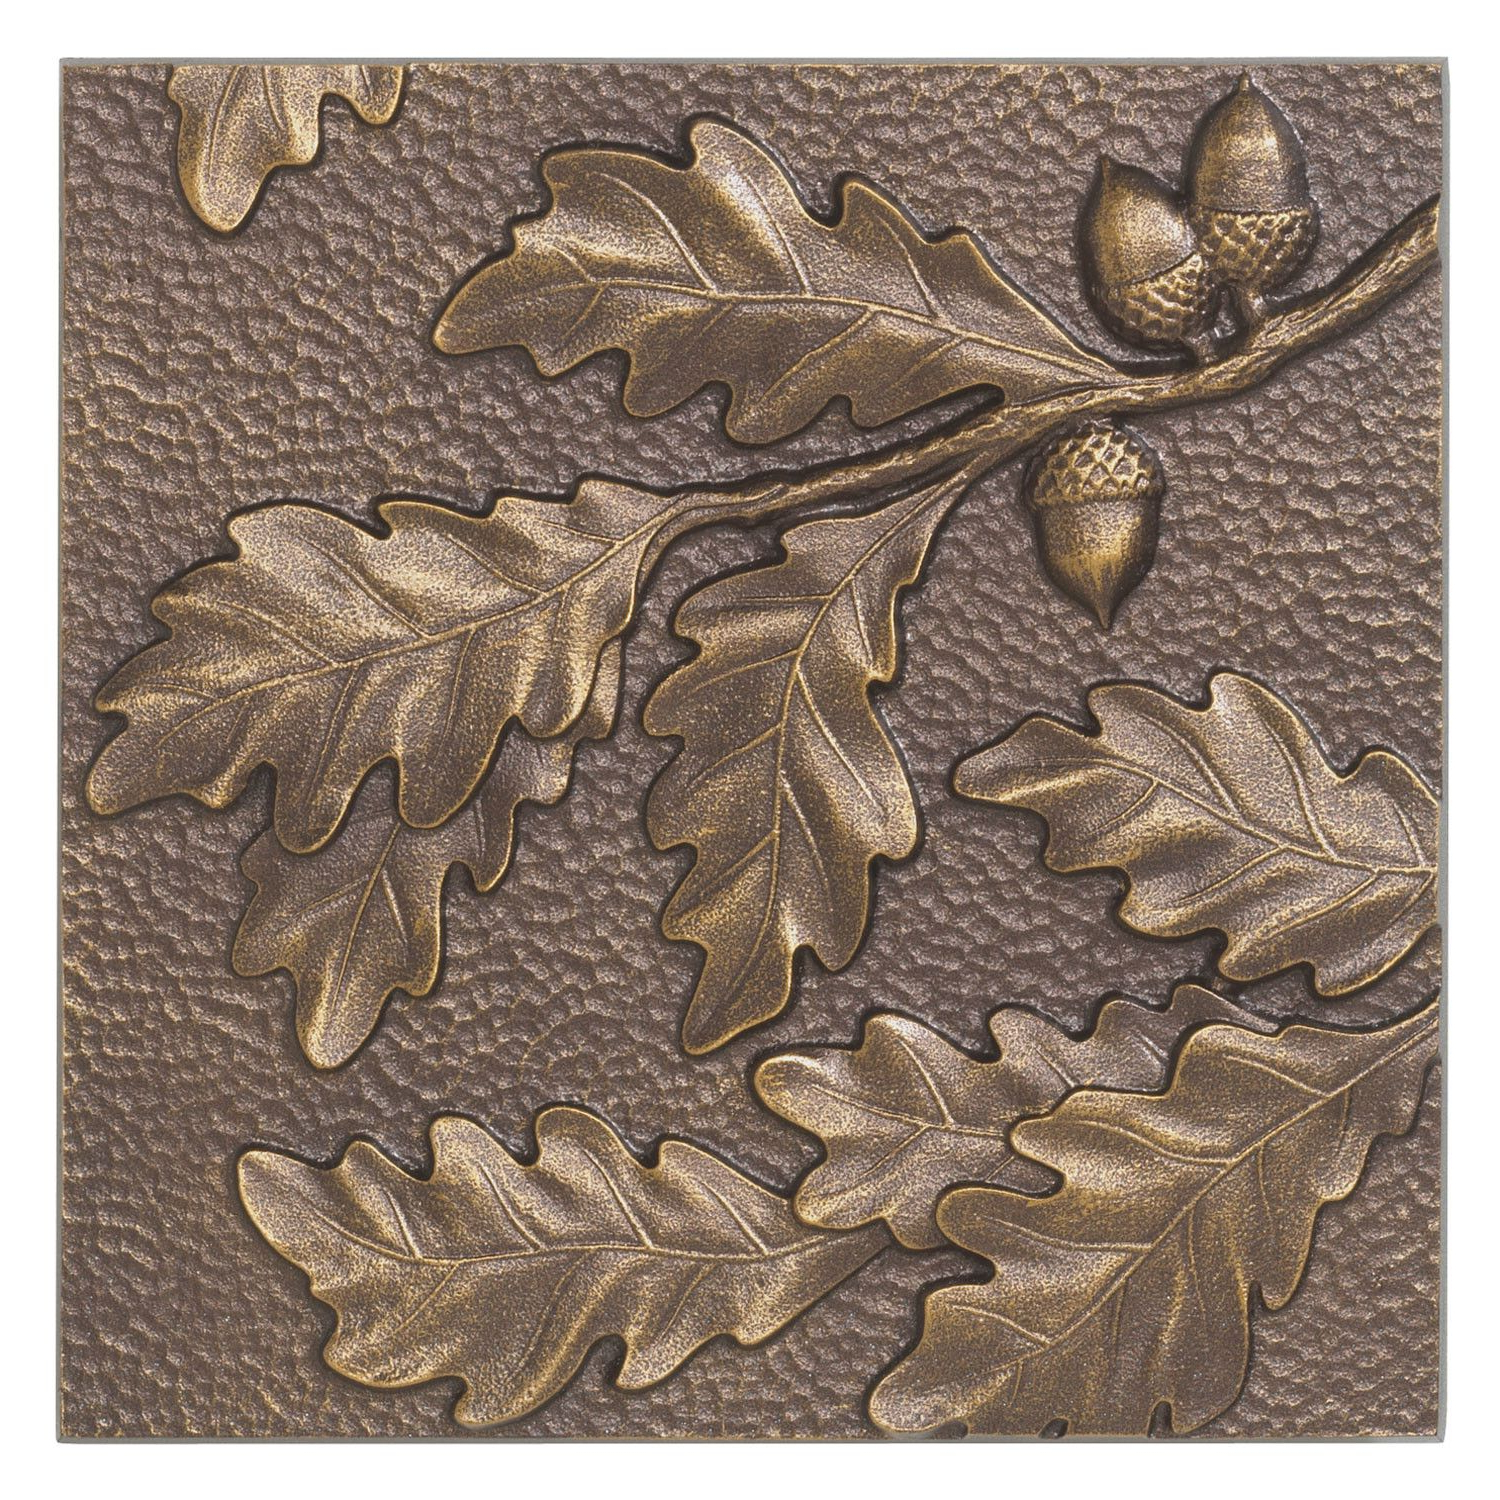 Copper Wall Decor Intended For Aluminum Maple Leaf Wall Decor (View 13 of 20)